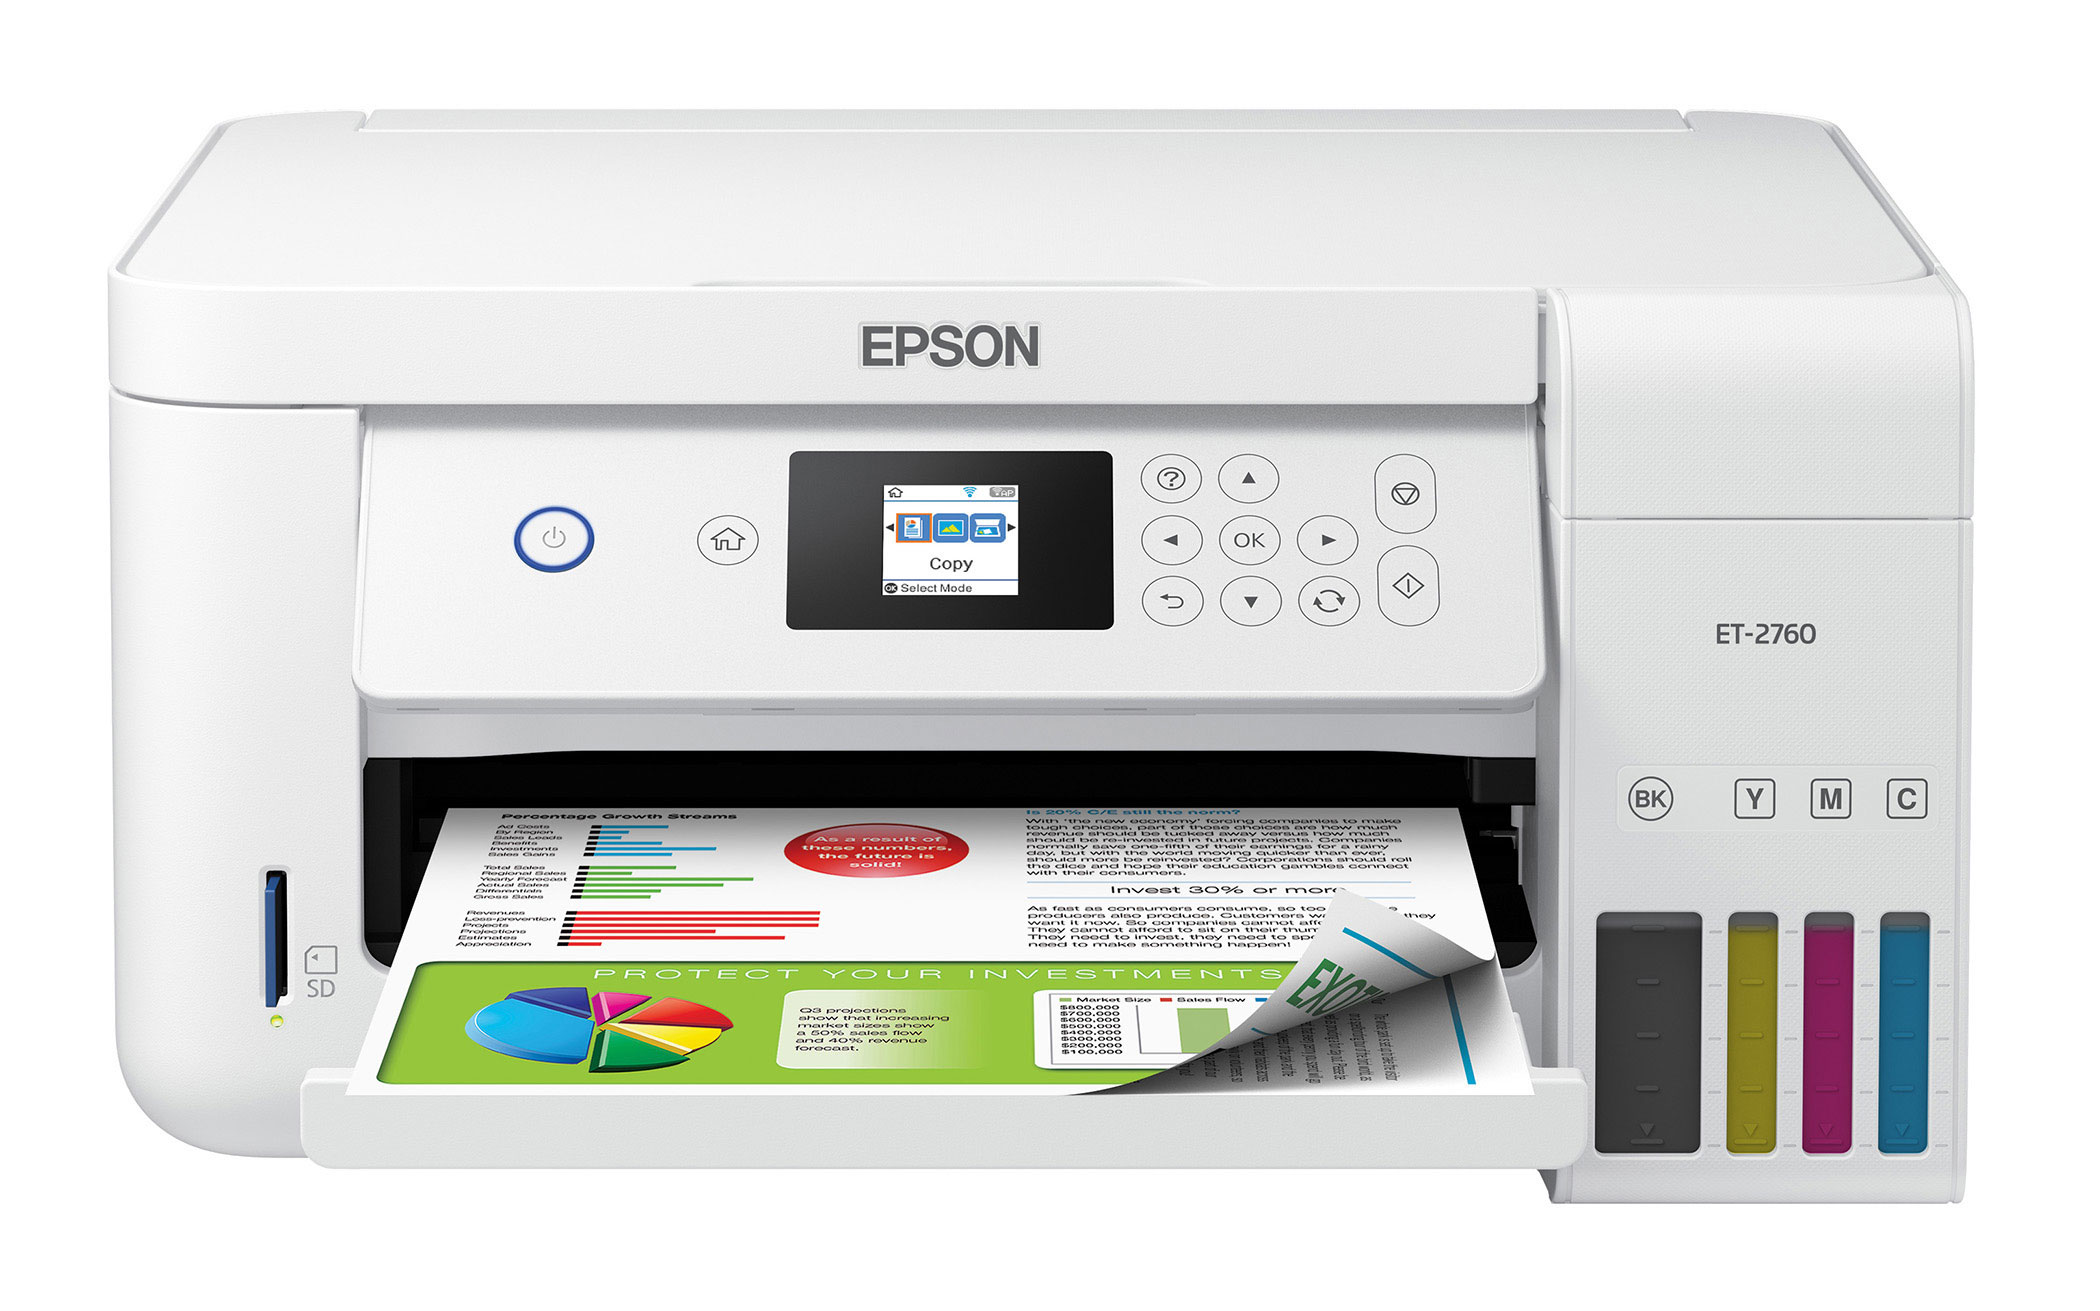 The Epson EcoTank ET-2760 All-in-One Supertank Printer offers wireless, auto 2-sided and voice-activated printing.